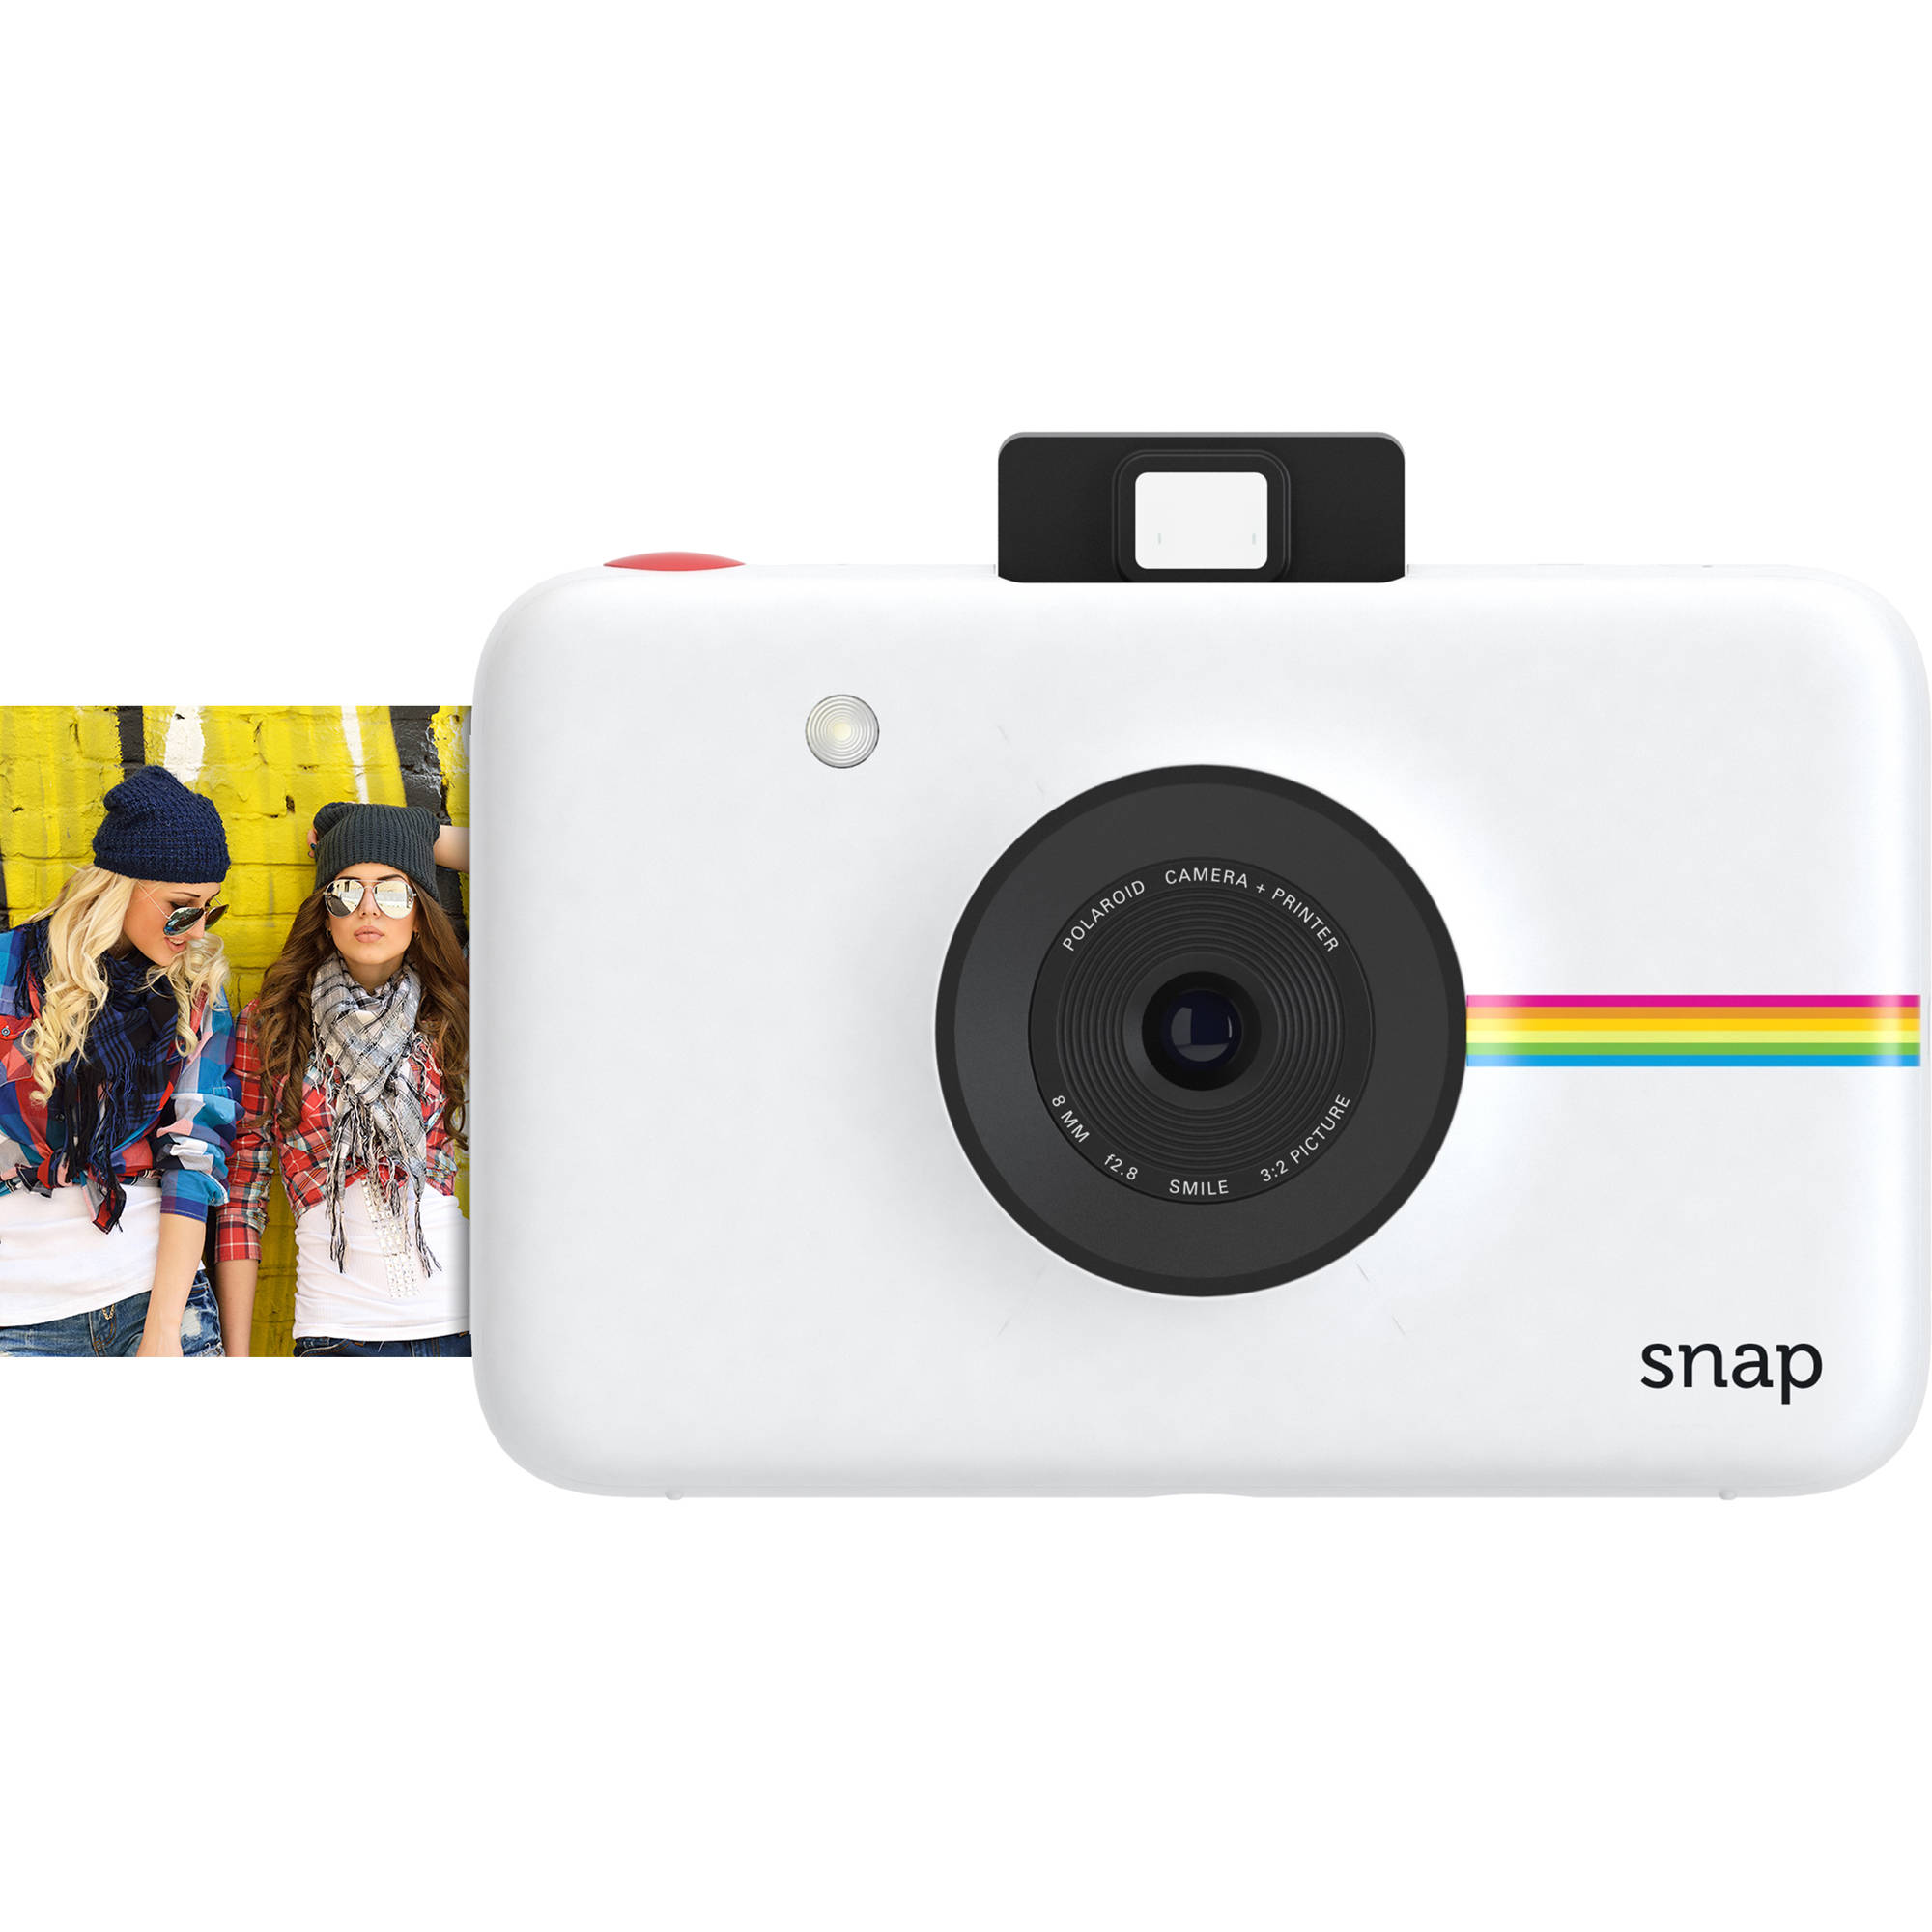 Take a look at our 3 Walmart Photo promotional codes including 3 sales. Most popular now: Shop Now for Prints starting at 9¢. Latest offer: Sign Up for Walmart Photo .